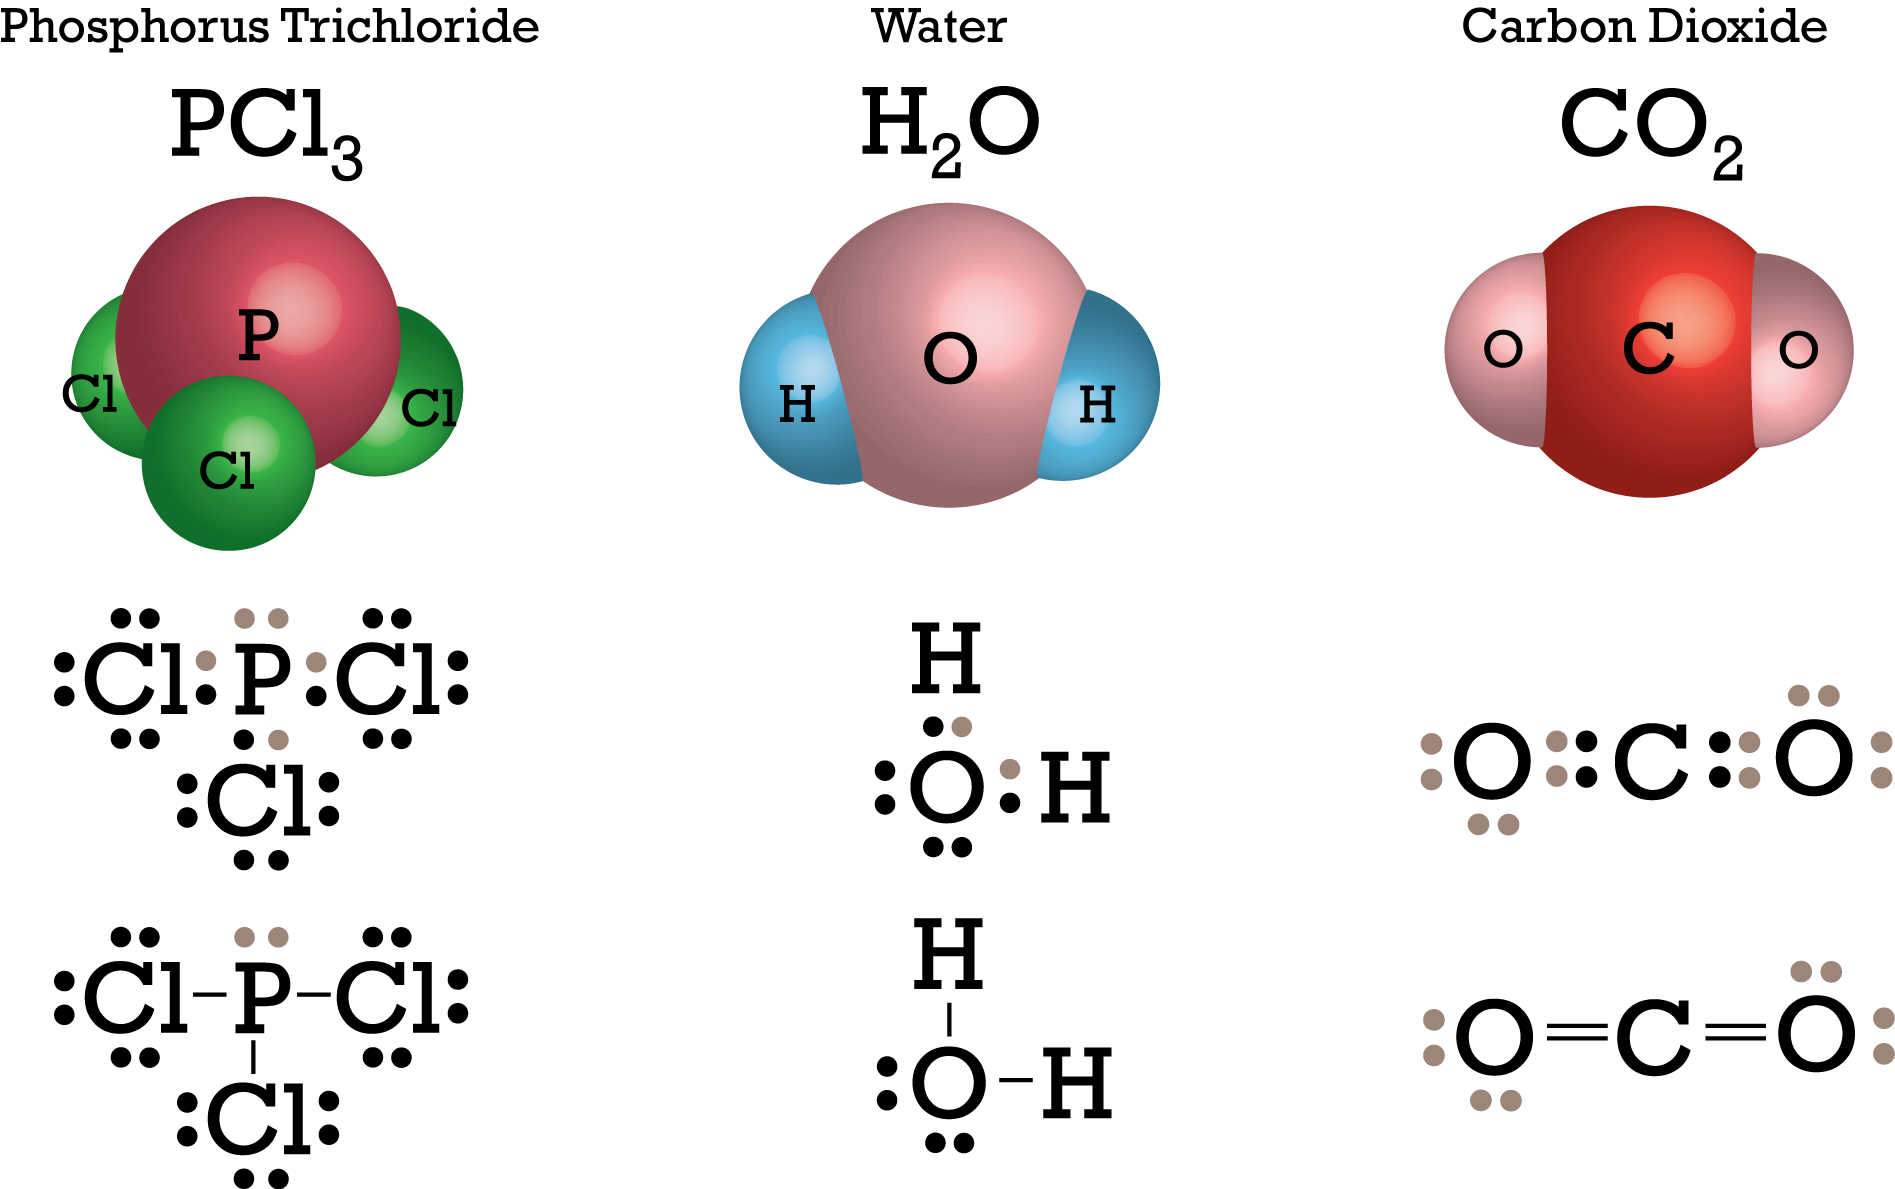 Drawing compound covalent. Collection of compounds